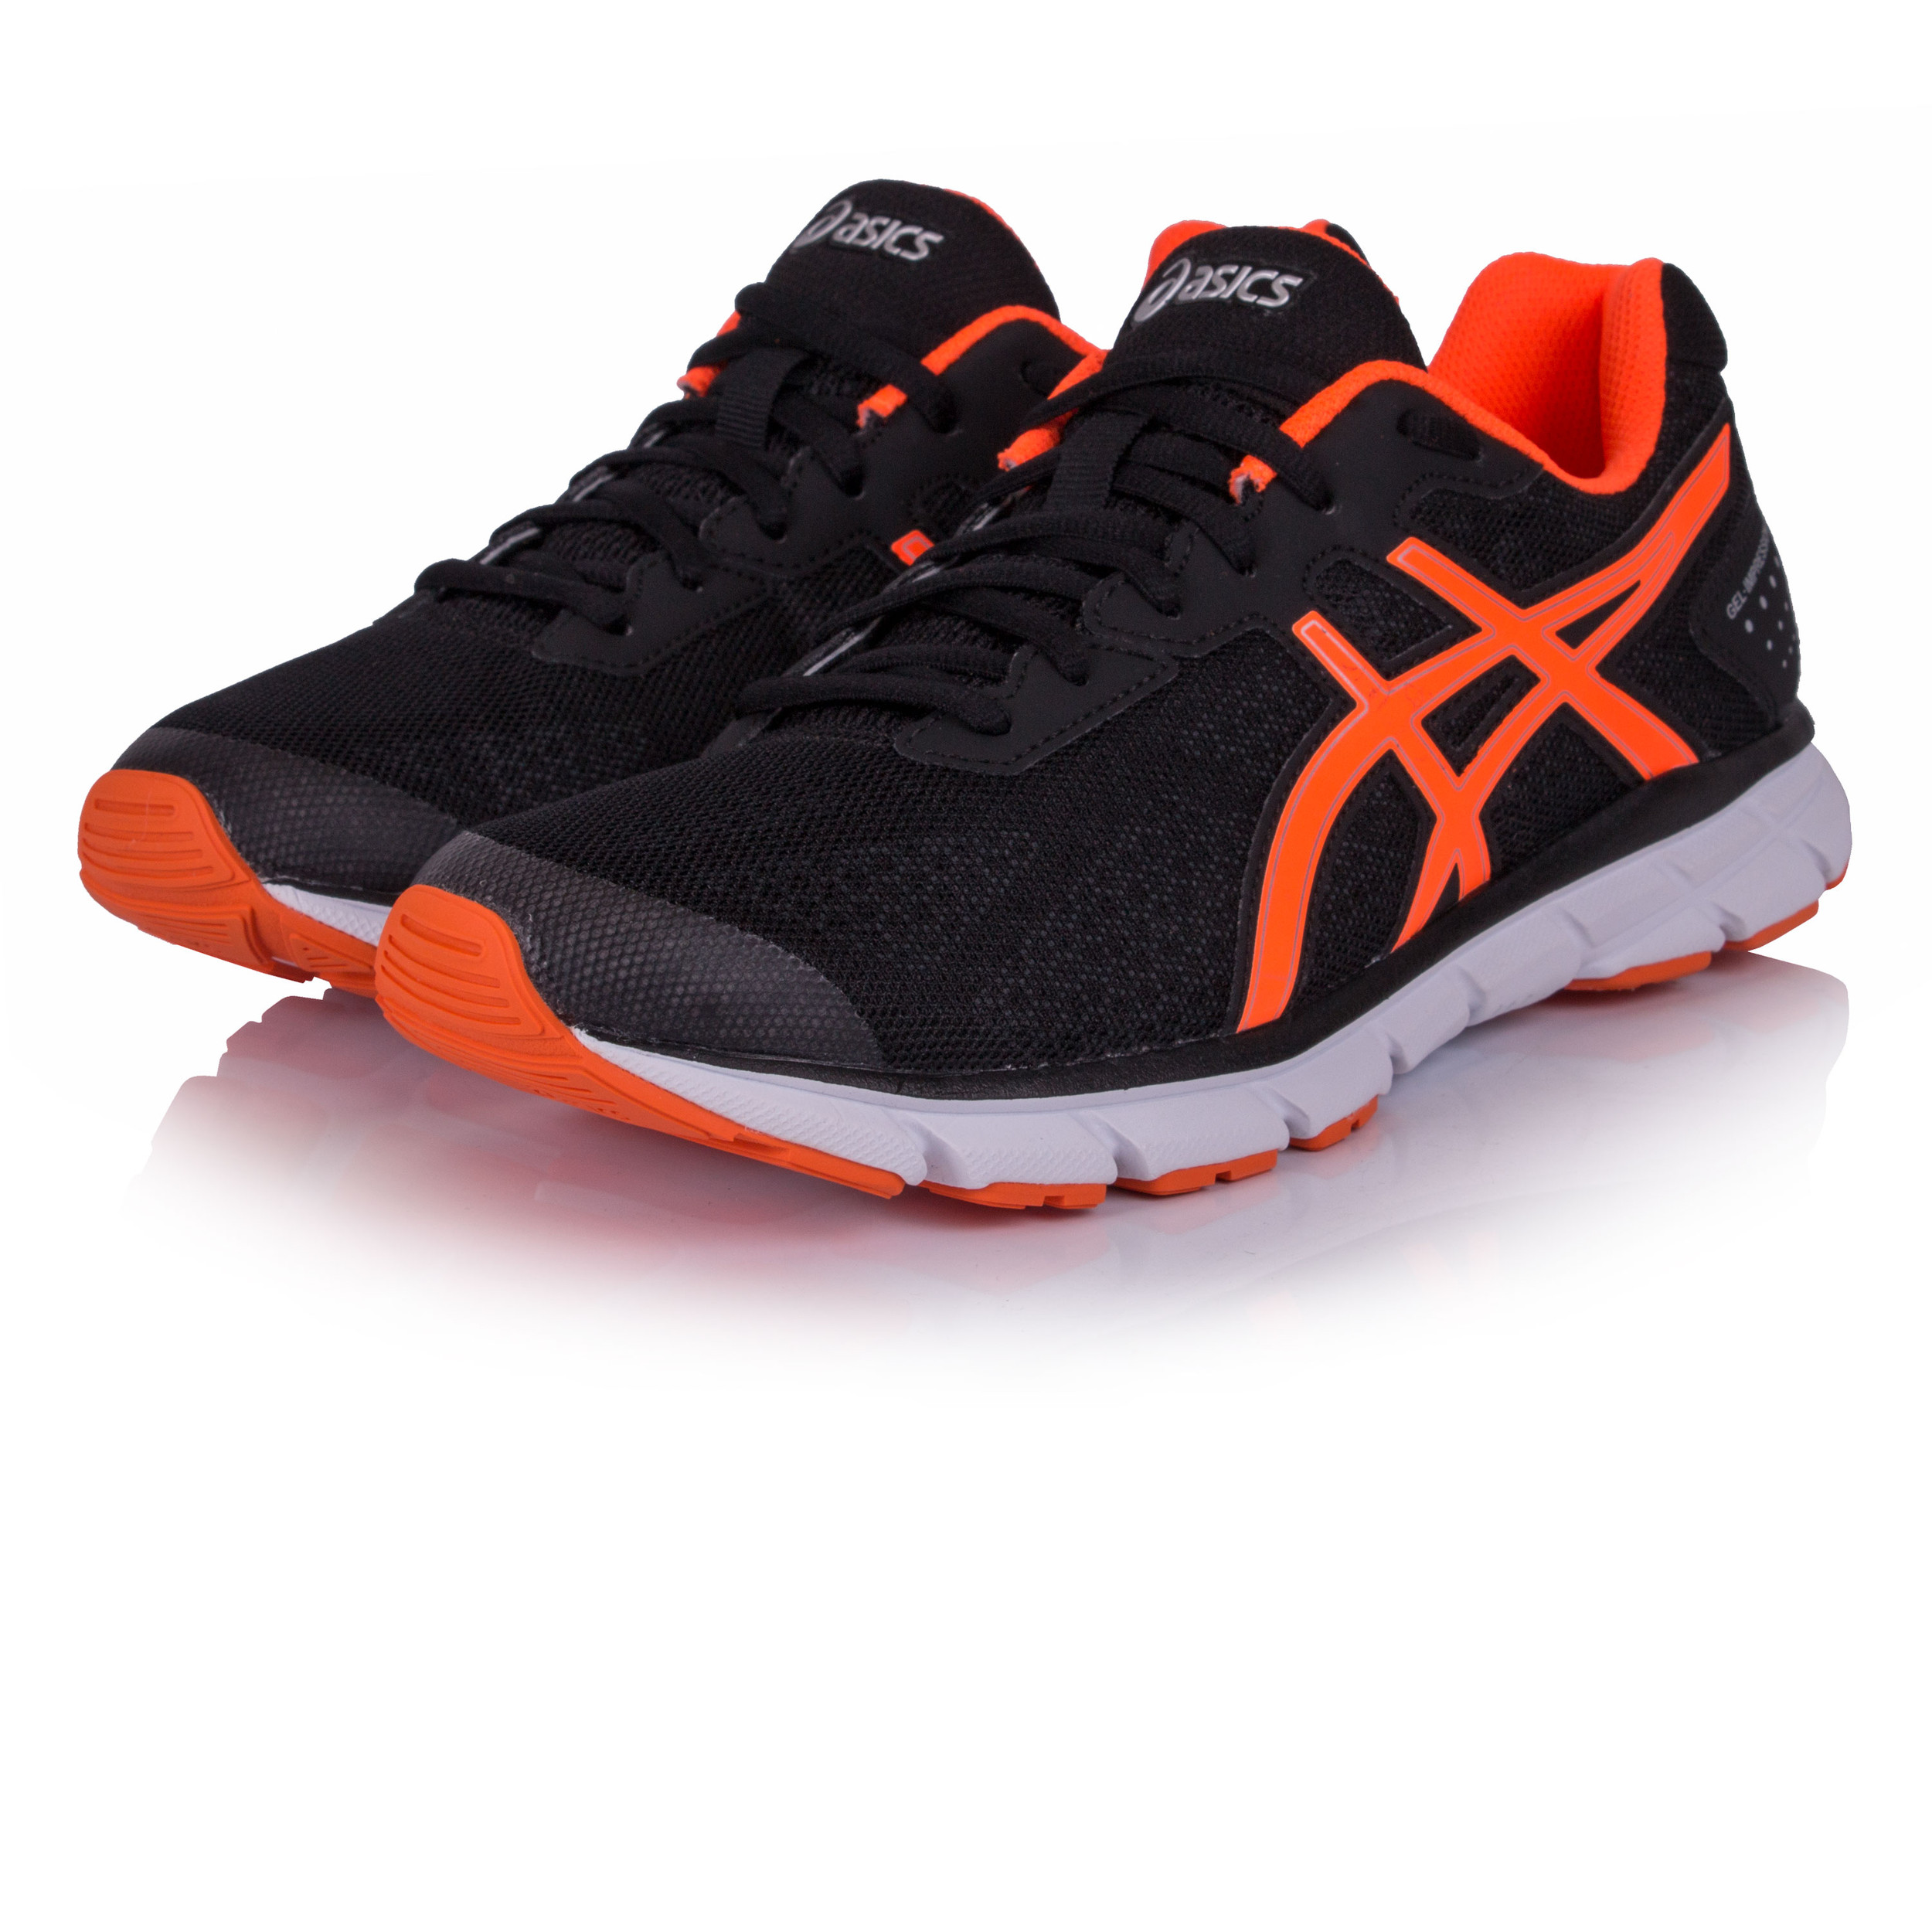 7c55e89c4ef0 Details about Asics Gel Impression 9 Mens Black Cushioned Running Sports  Shoes Trainers